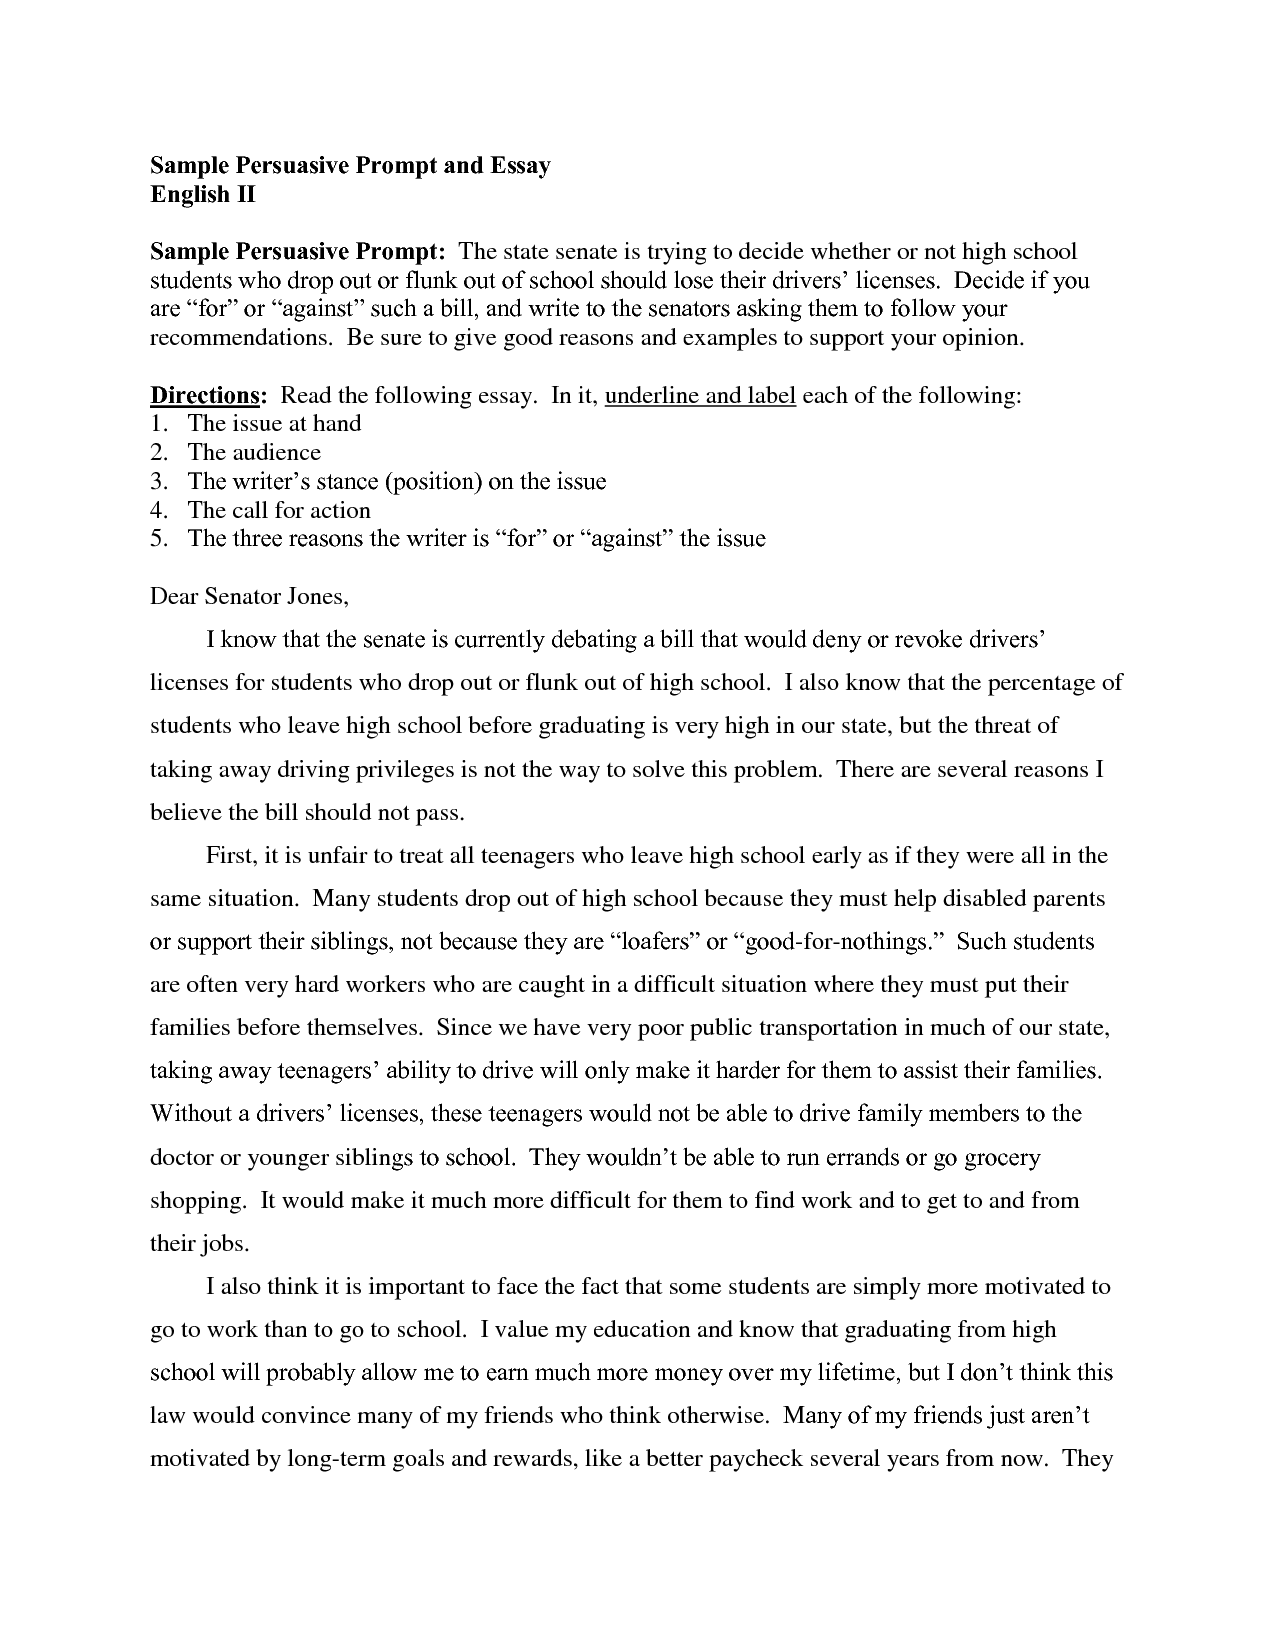 013 Research Paper Easy Topic Persuasive Essay Topics For High School Sample Ideas Highschool Students Good Prompt Funny Fun List Of Seniors Writing English Sensational Questions Psychology Science Biology Full